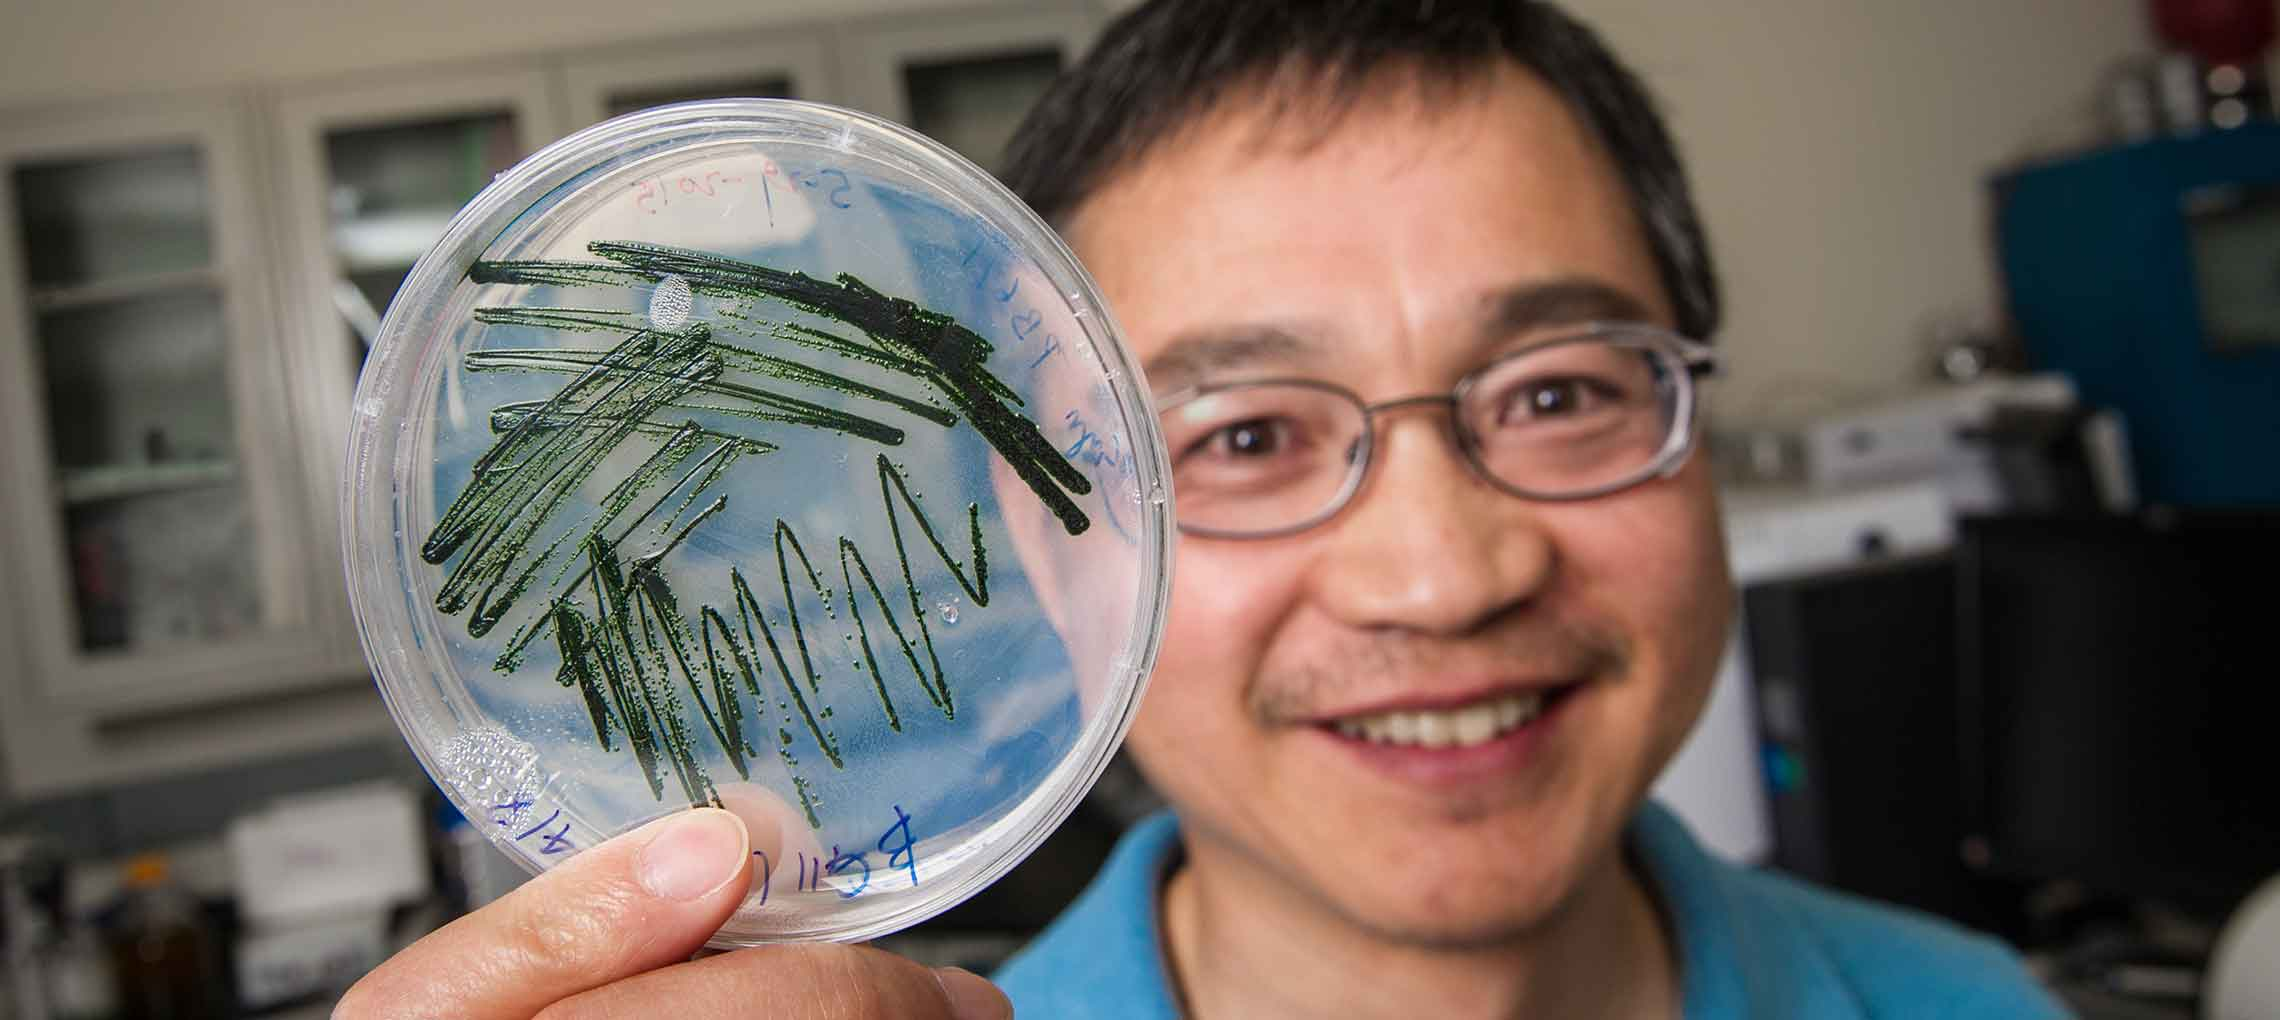 A scientist holds a petri dish containing algae.